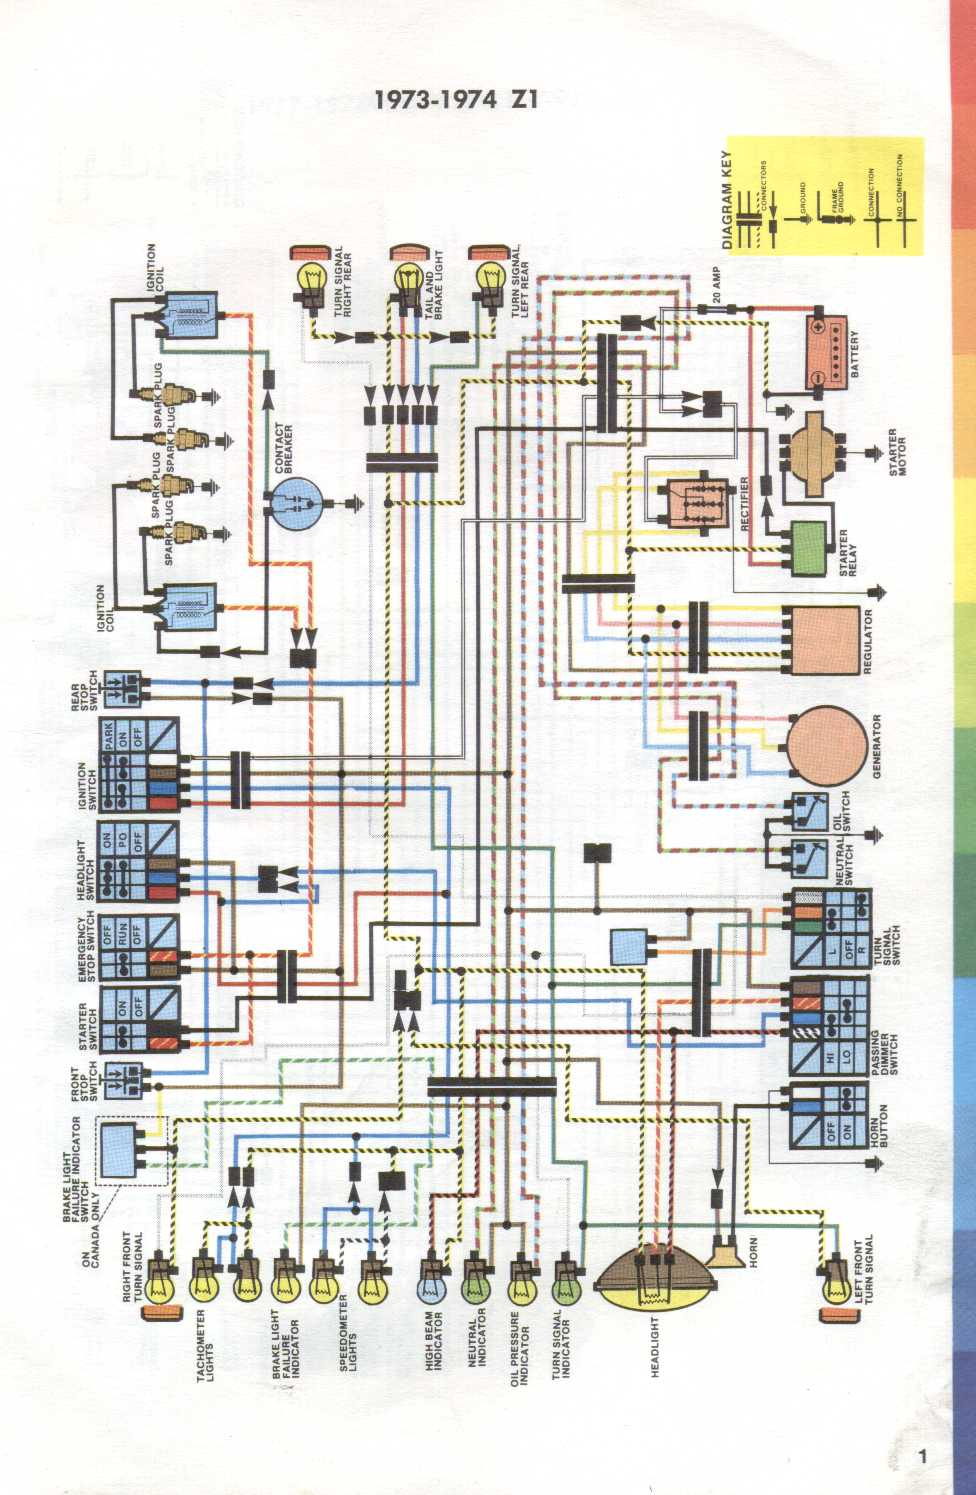 wiring diagram kz750 ltd ke175 wiring diagram wiring